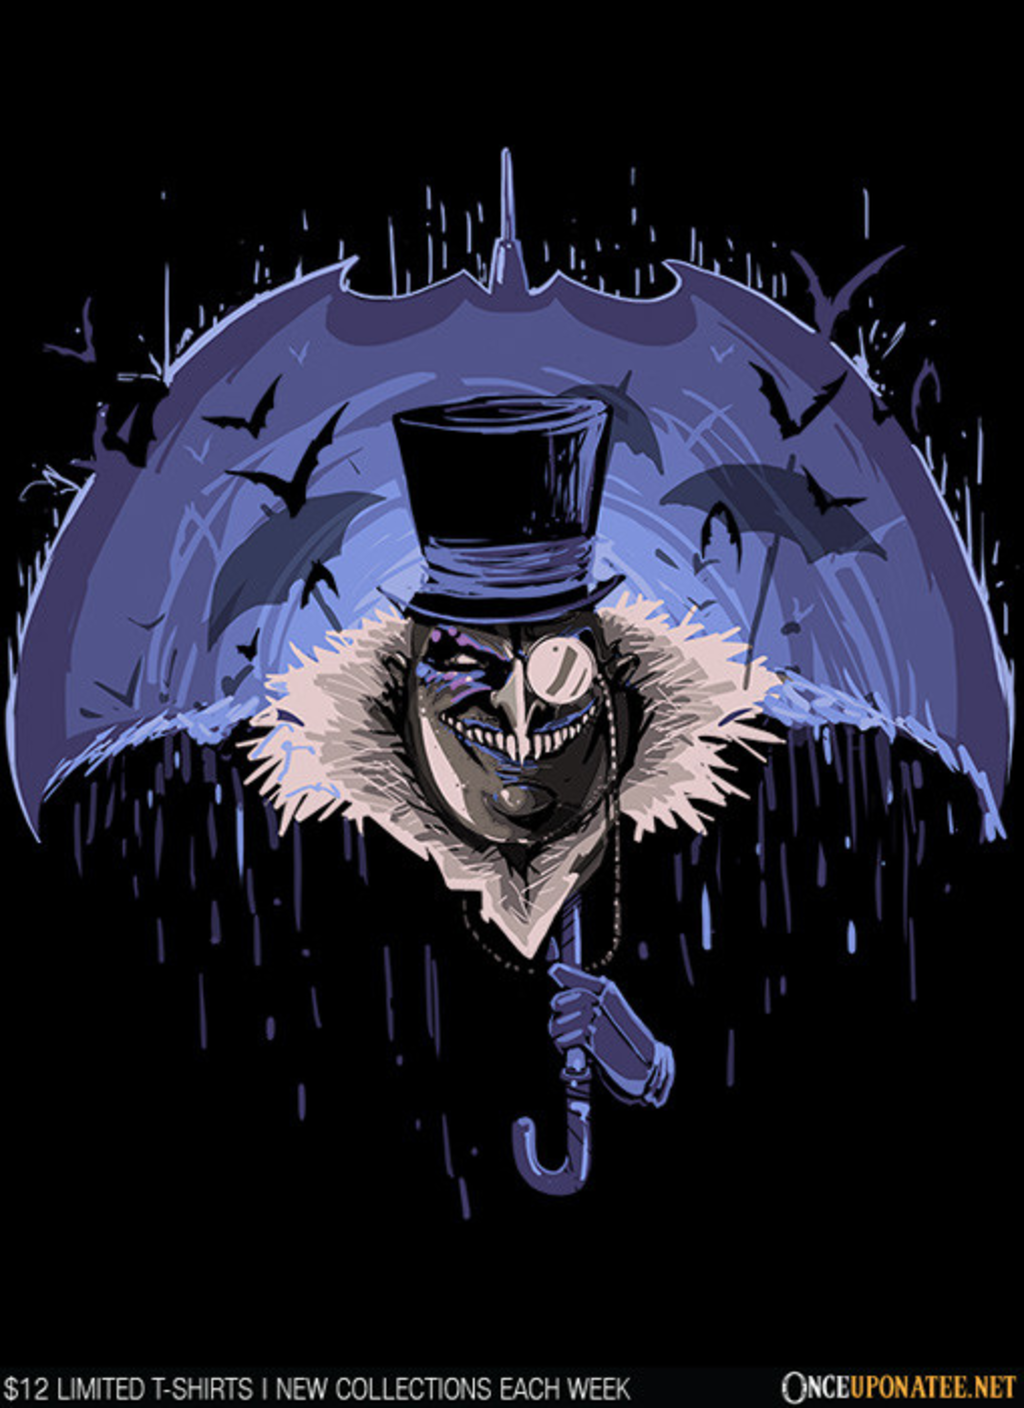 Once Upon a Tee: Penguin Nightmare